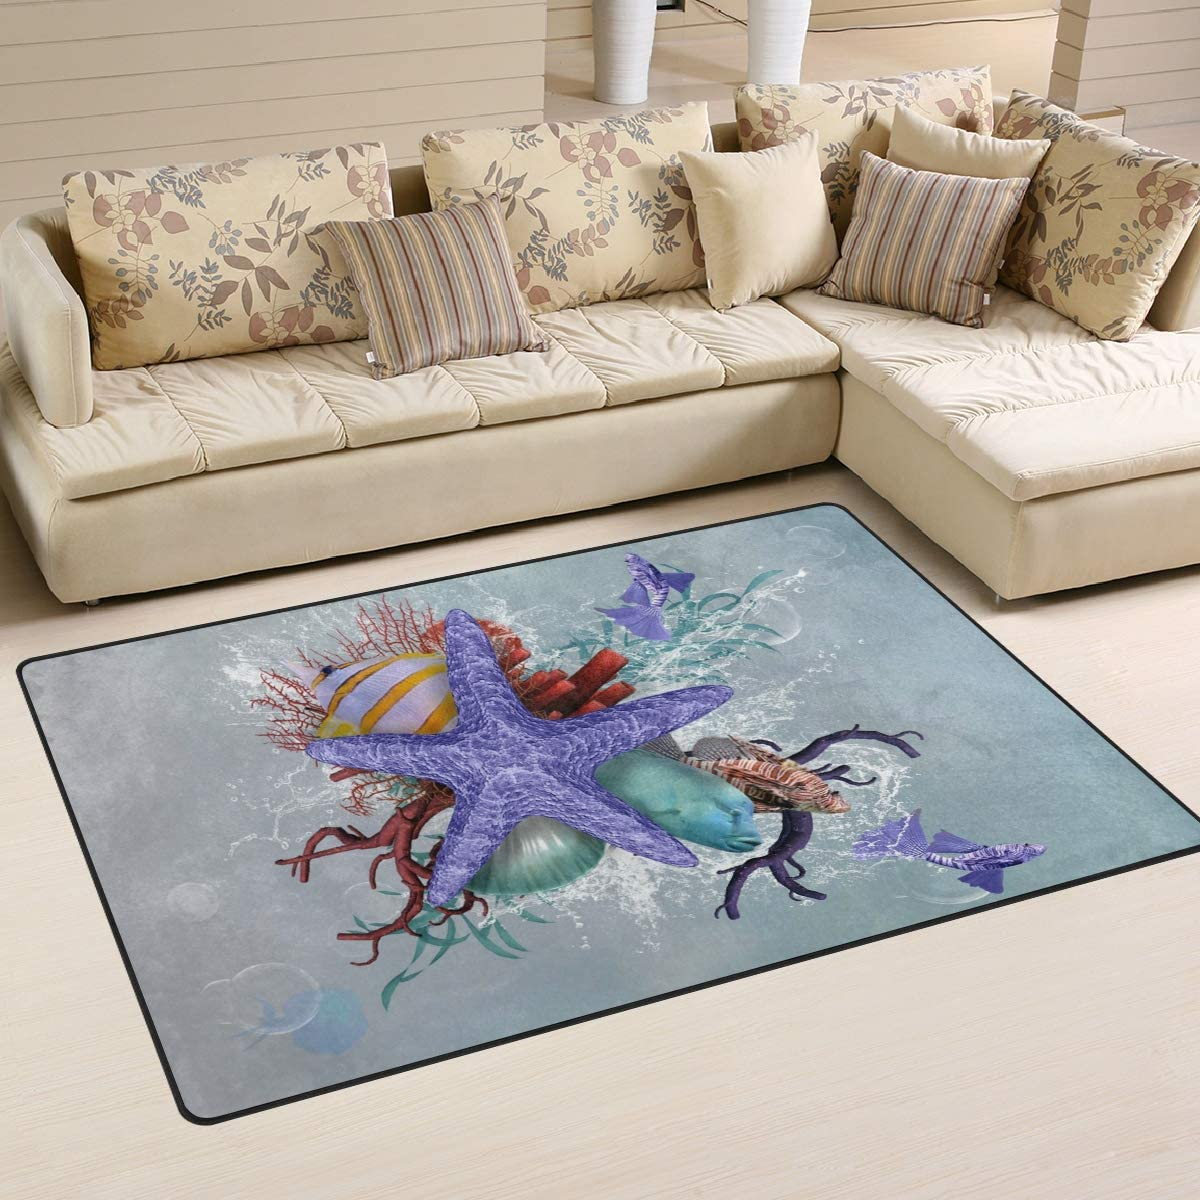 20 x 31 Inches // 50 x 80 cm Naanle Ocean Starfish Non Slip Area Rug for Living Dinning Room Bedroom Kitchen 1.7  x 2.6 Starfish Nursery Rug Floor Carpet Yoga Mat